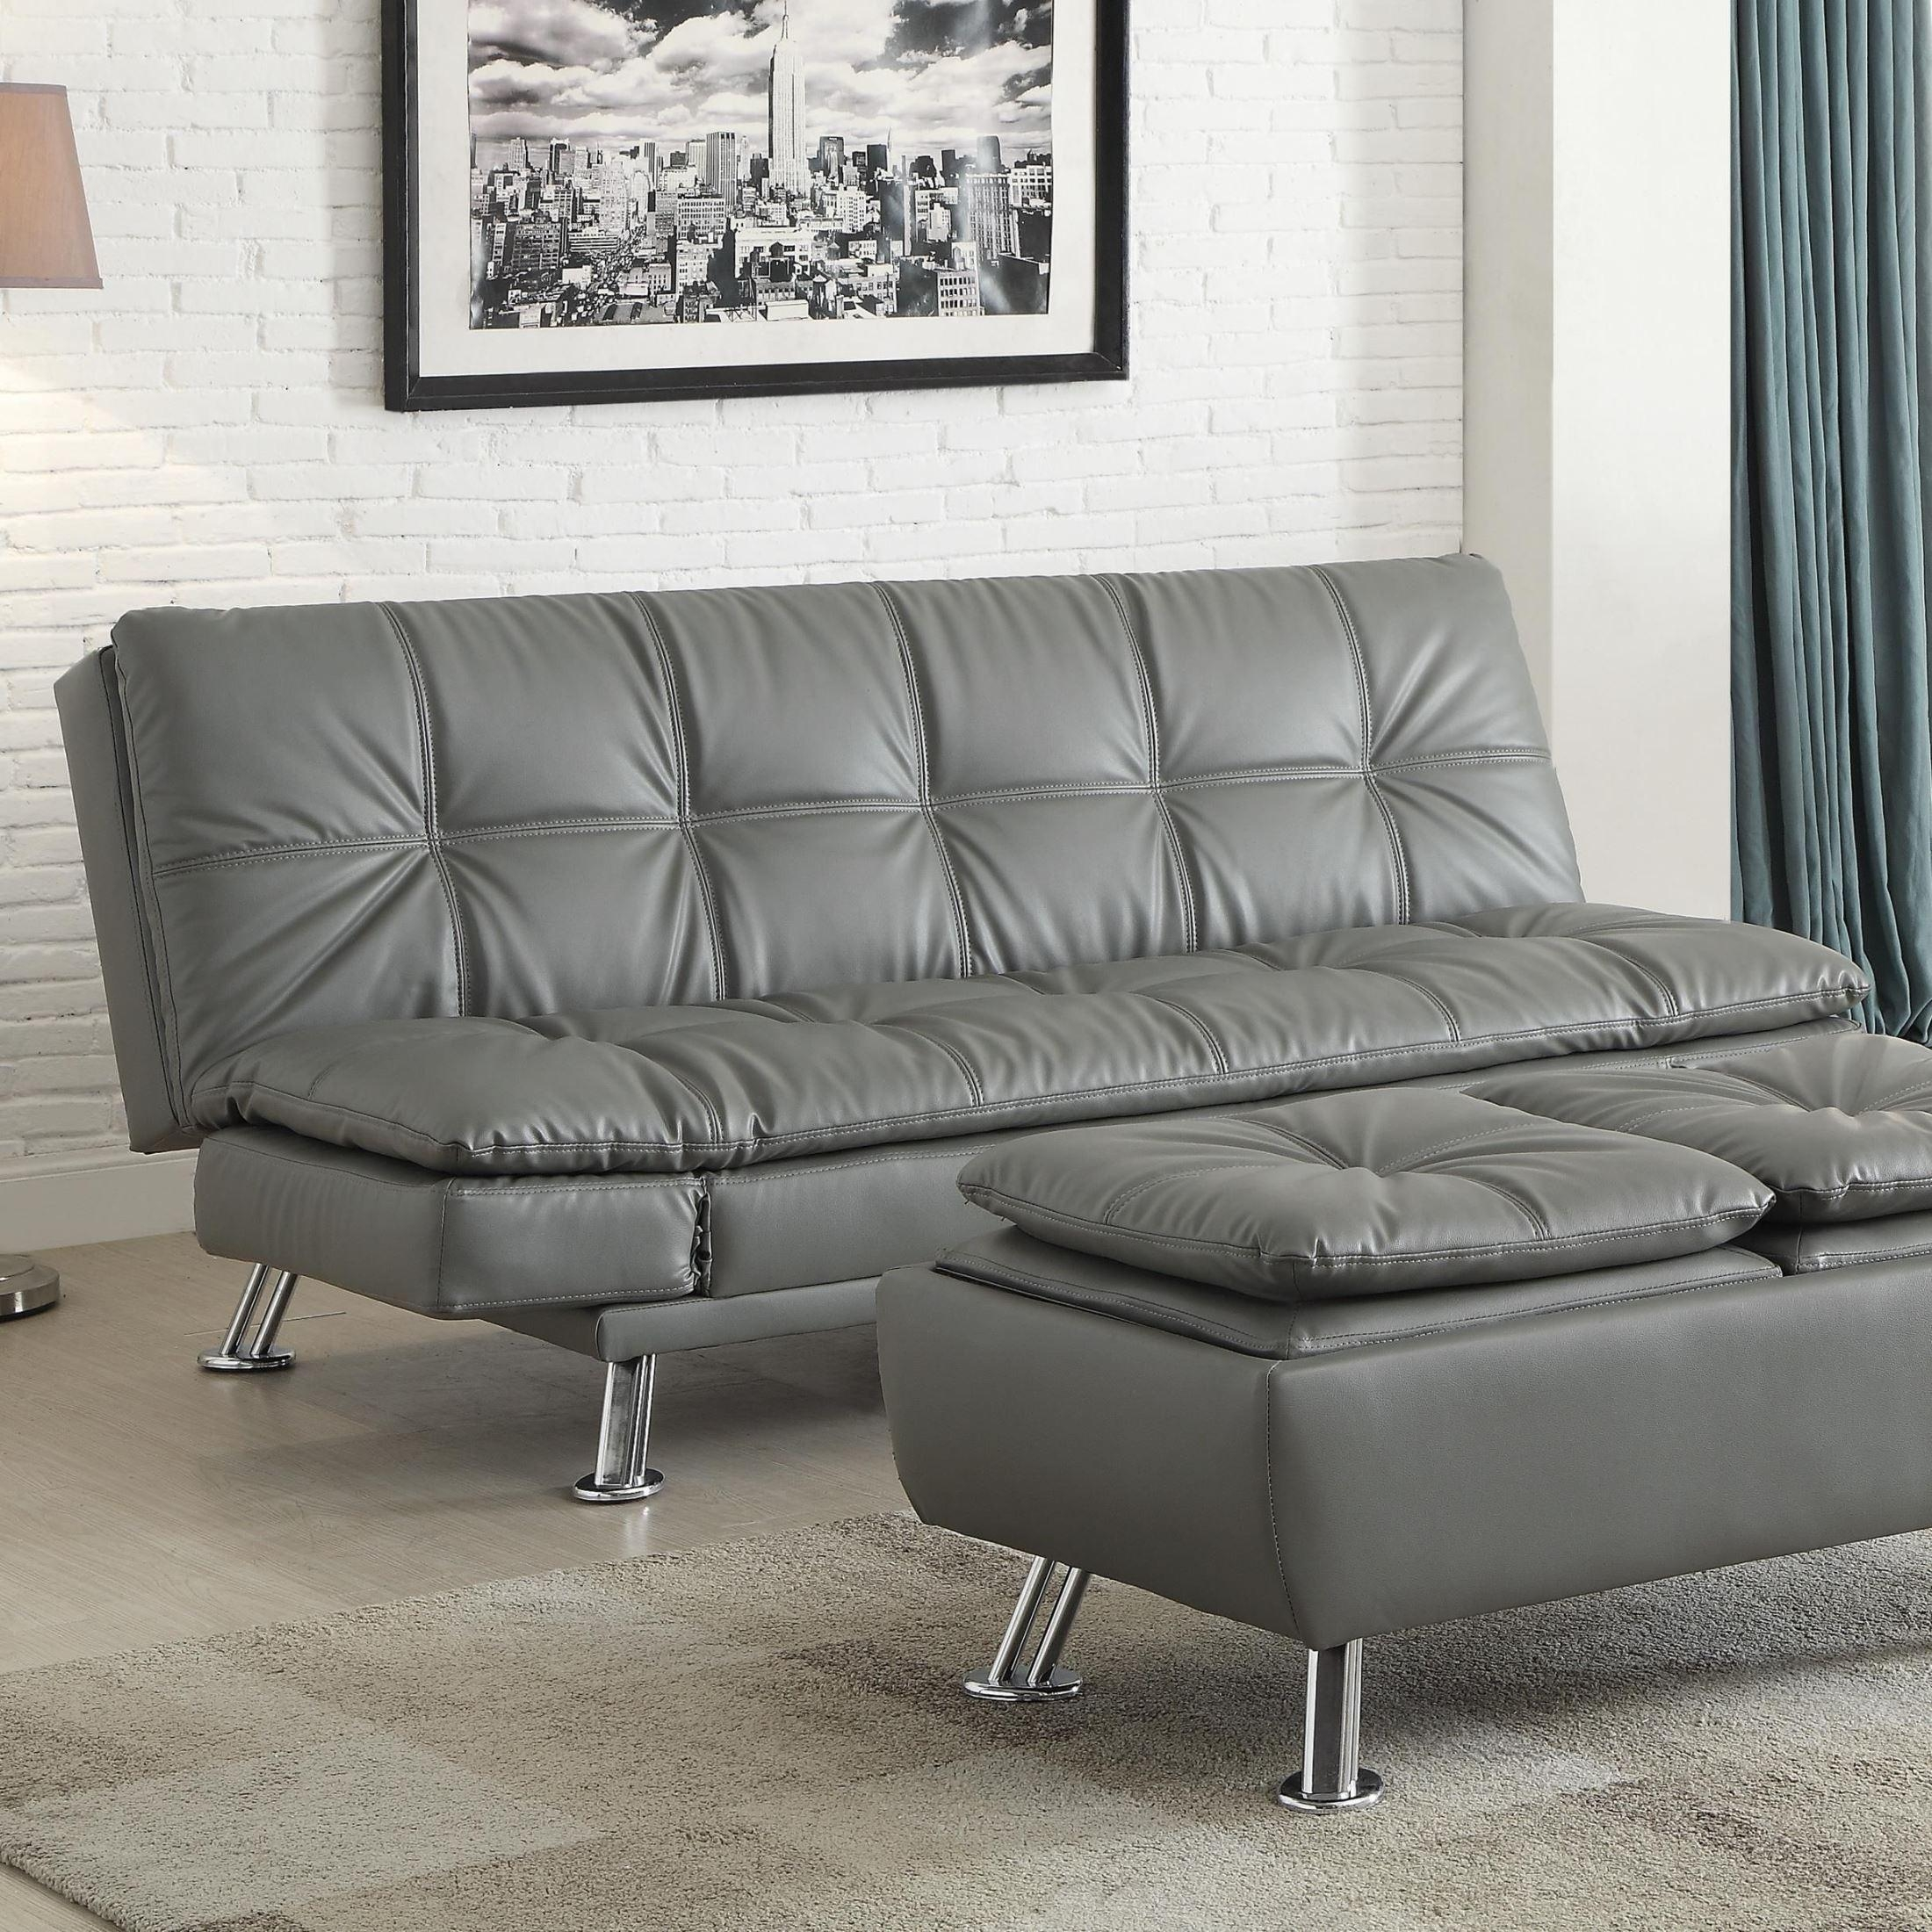 Dilleston Futon Style Living Room Set From Coaster (500096 Intended For Coaster Futon Sofa Beds (Image 14 of 20)